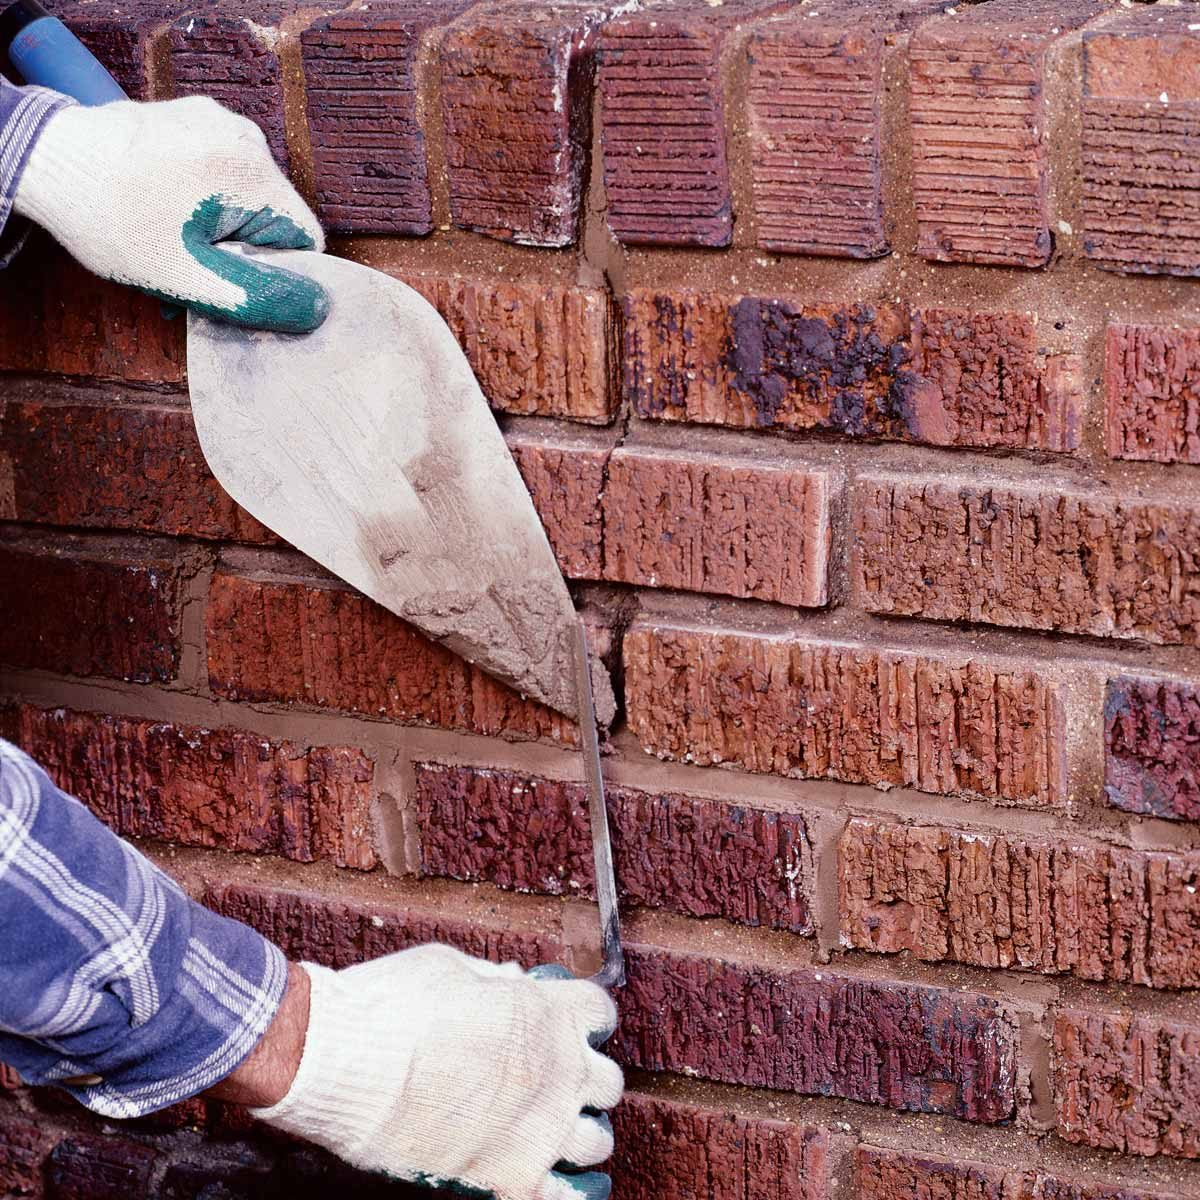 Woman adds motar mix to crack in bricks